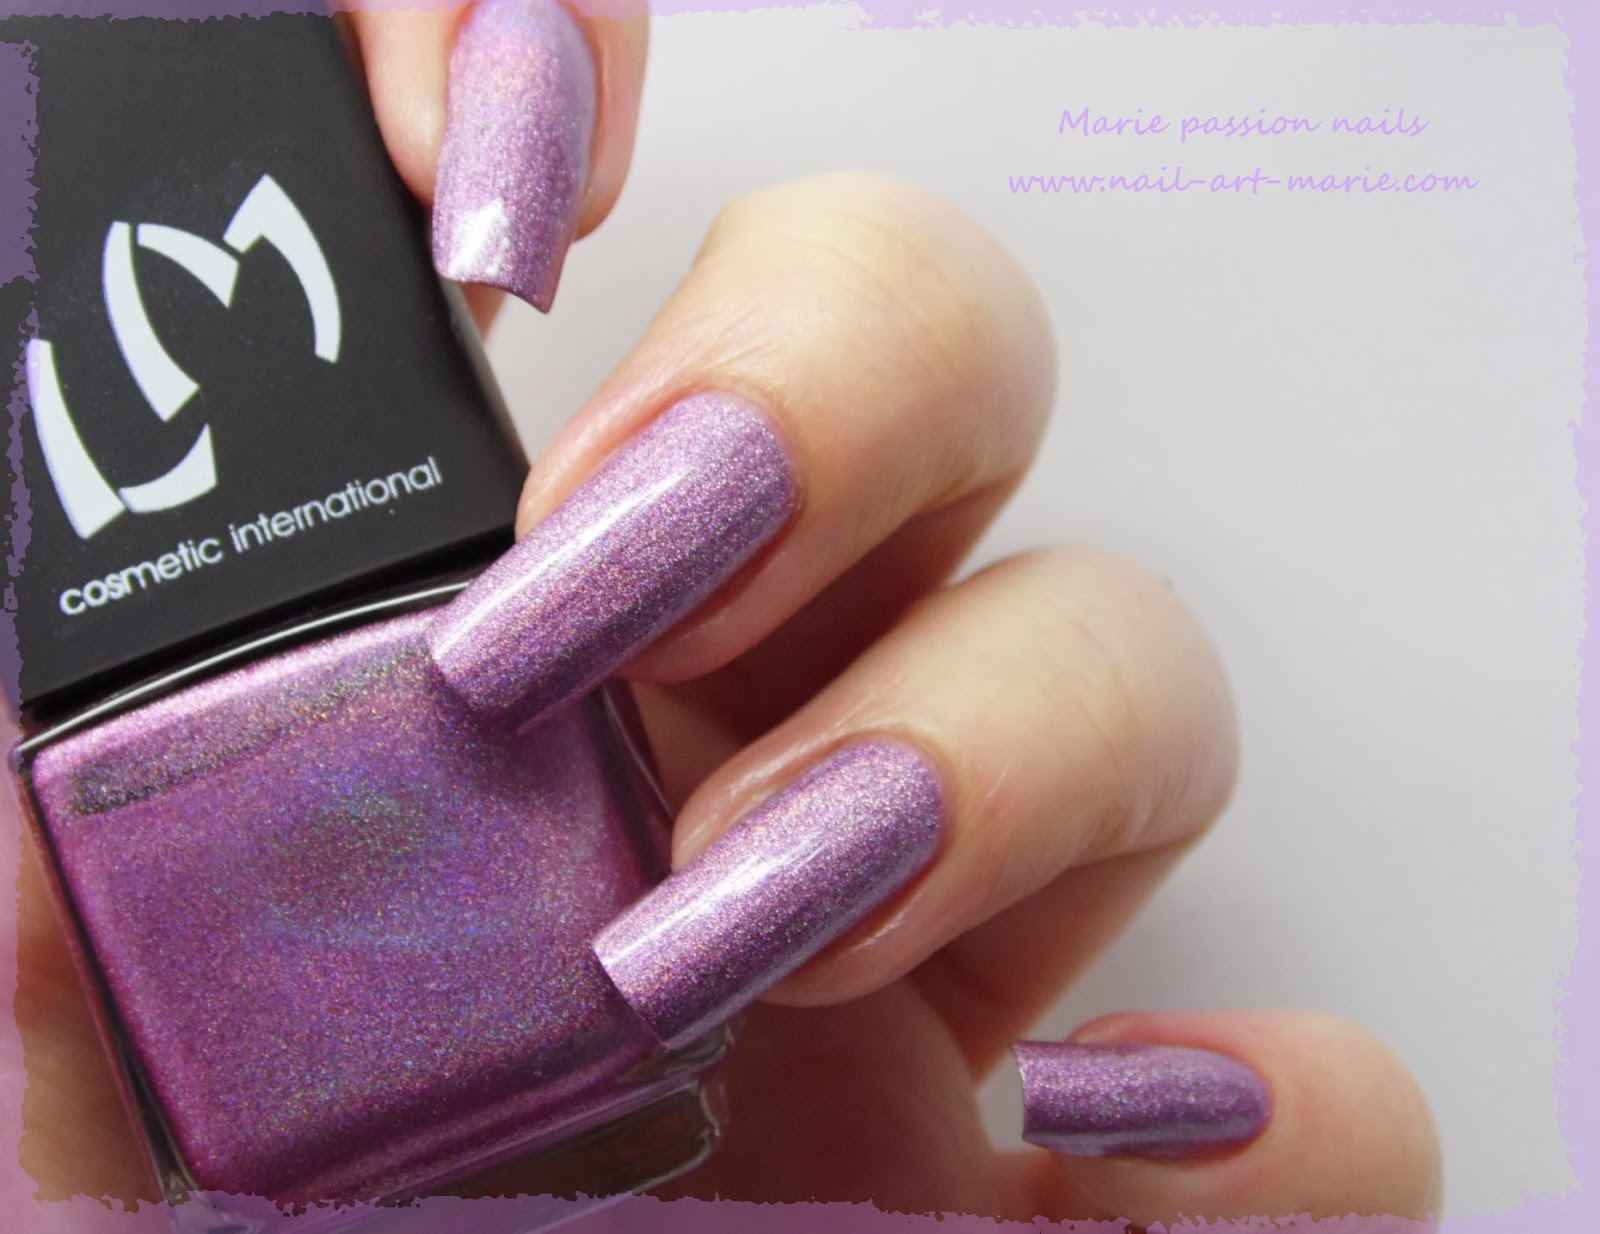 LM Cosmetic Maia7